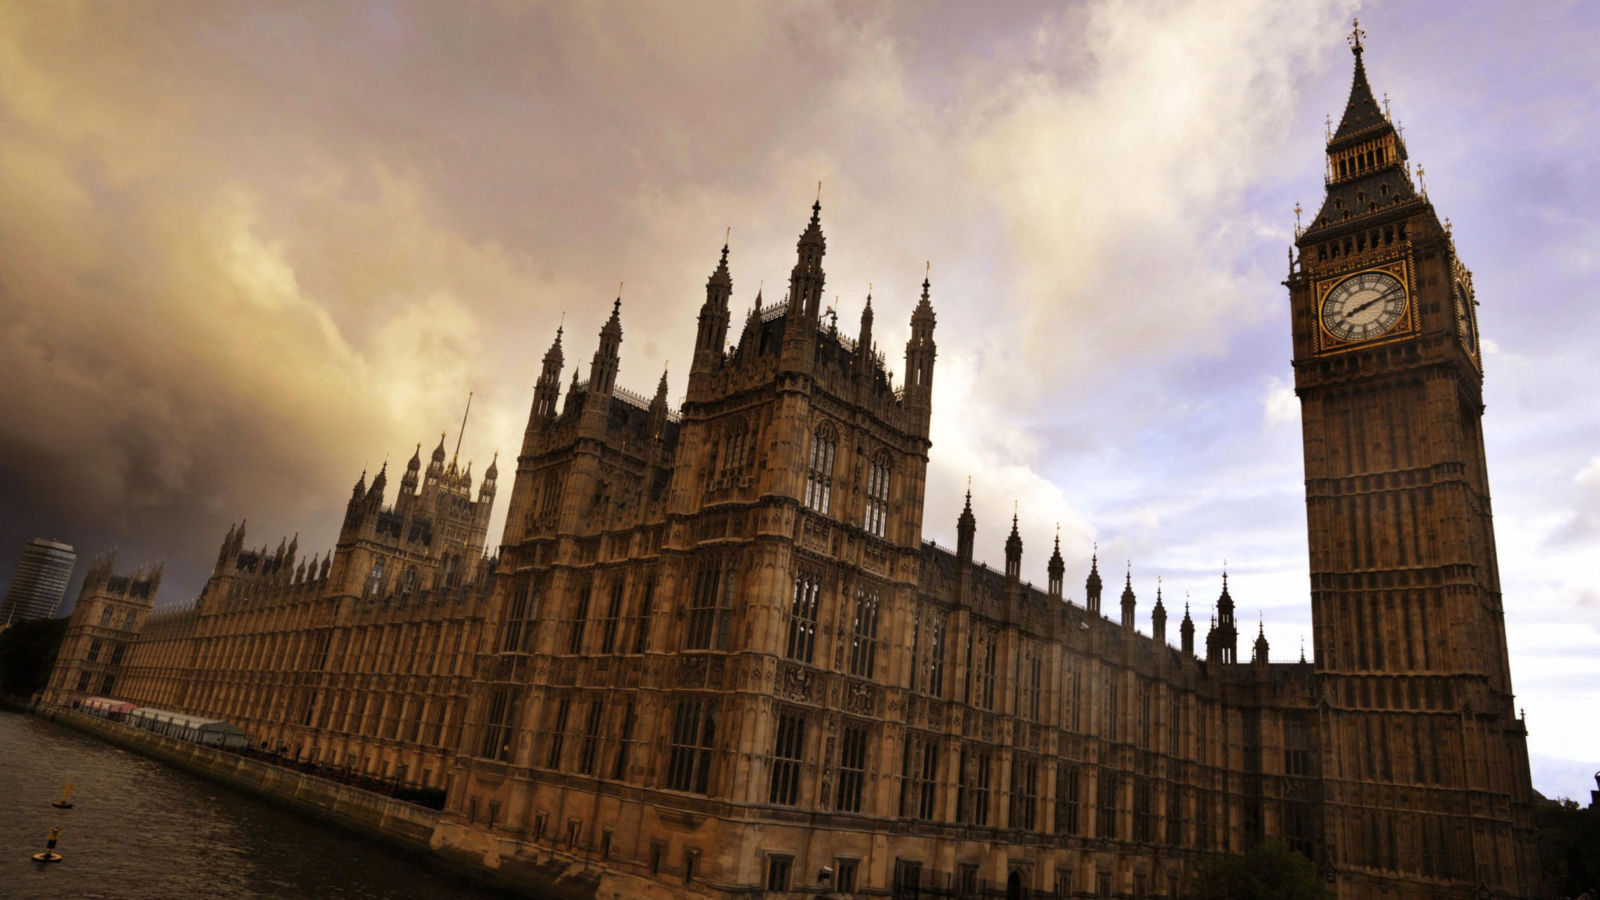 Dozens of Parliamentary email accounts hacked